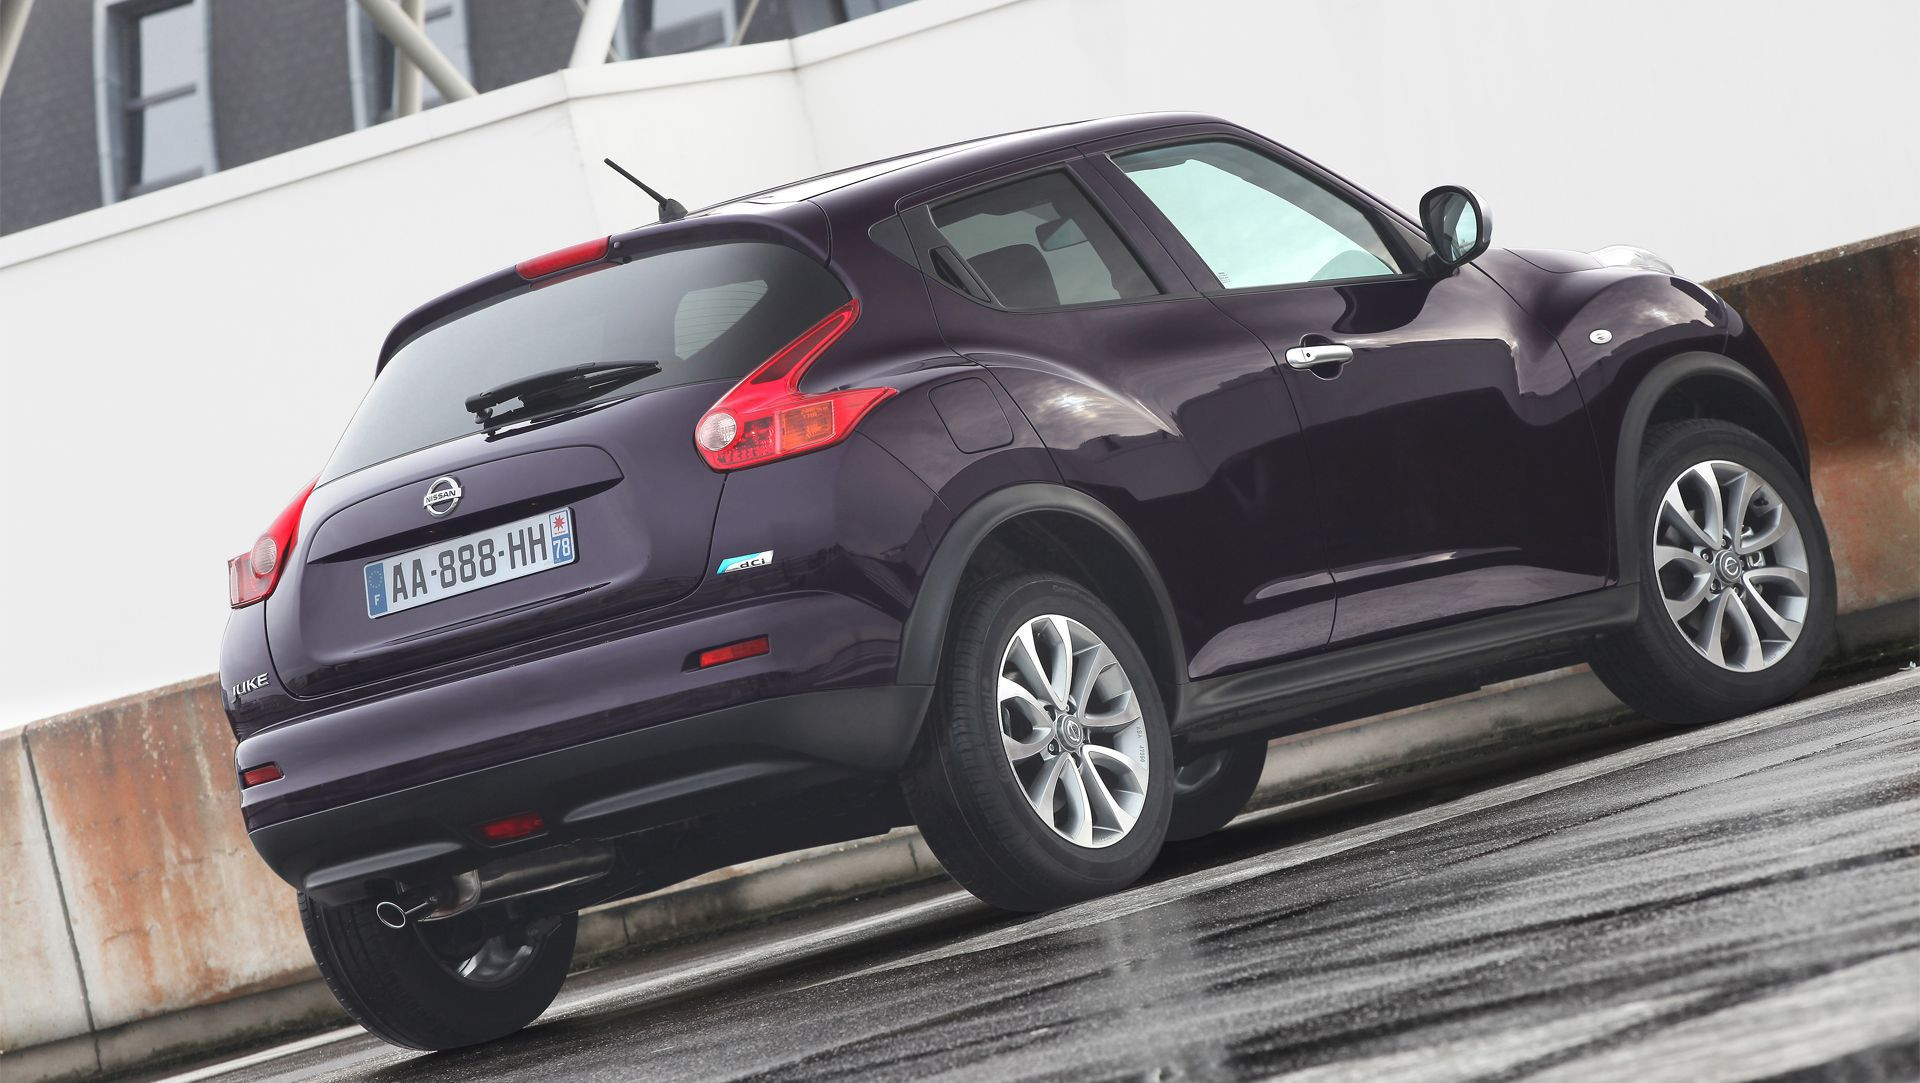 Nissan juke shiro sophisticated and chic auto moto japan bullet nissan juke shiro sophisticated and chic vanachro Image collections